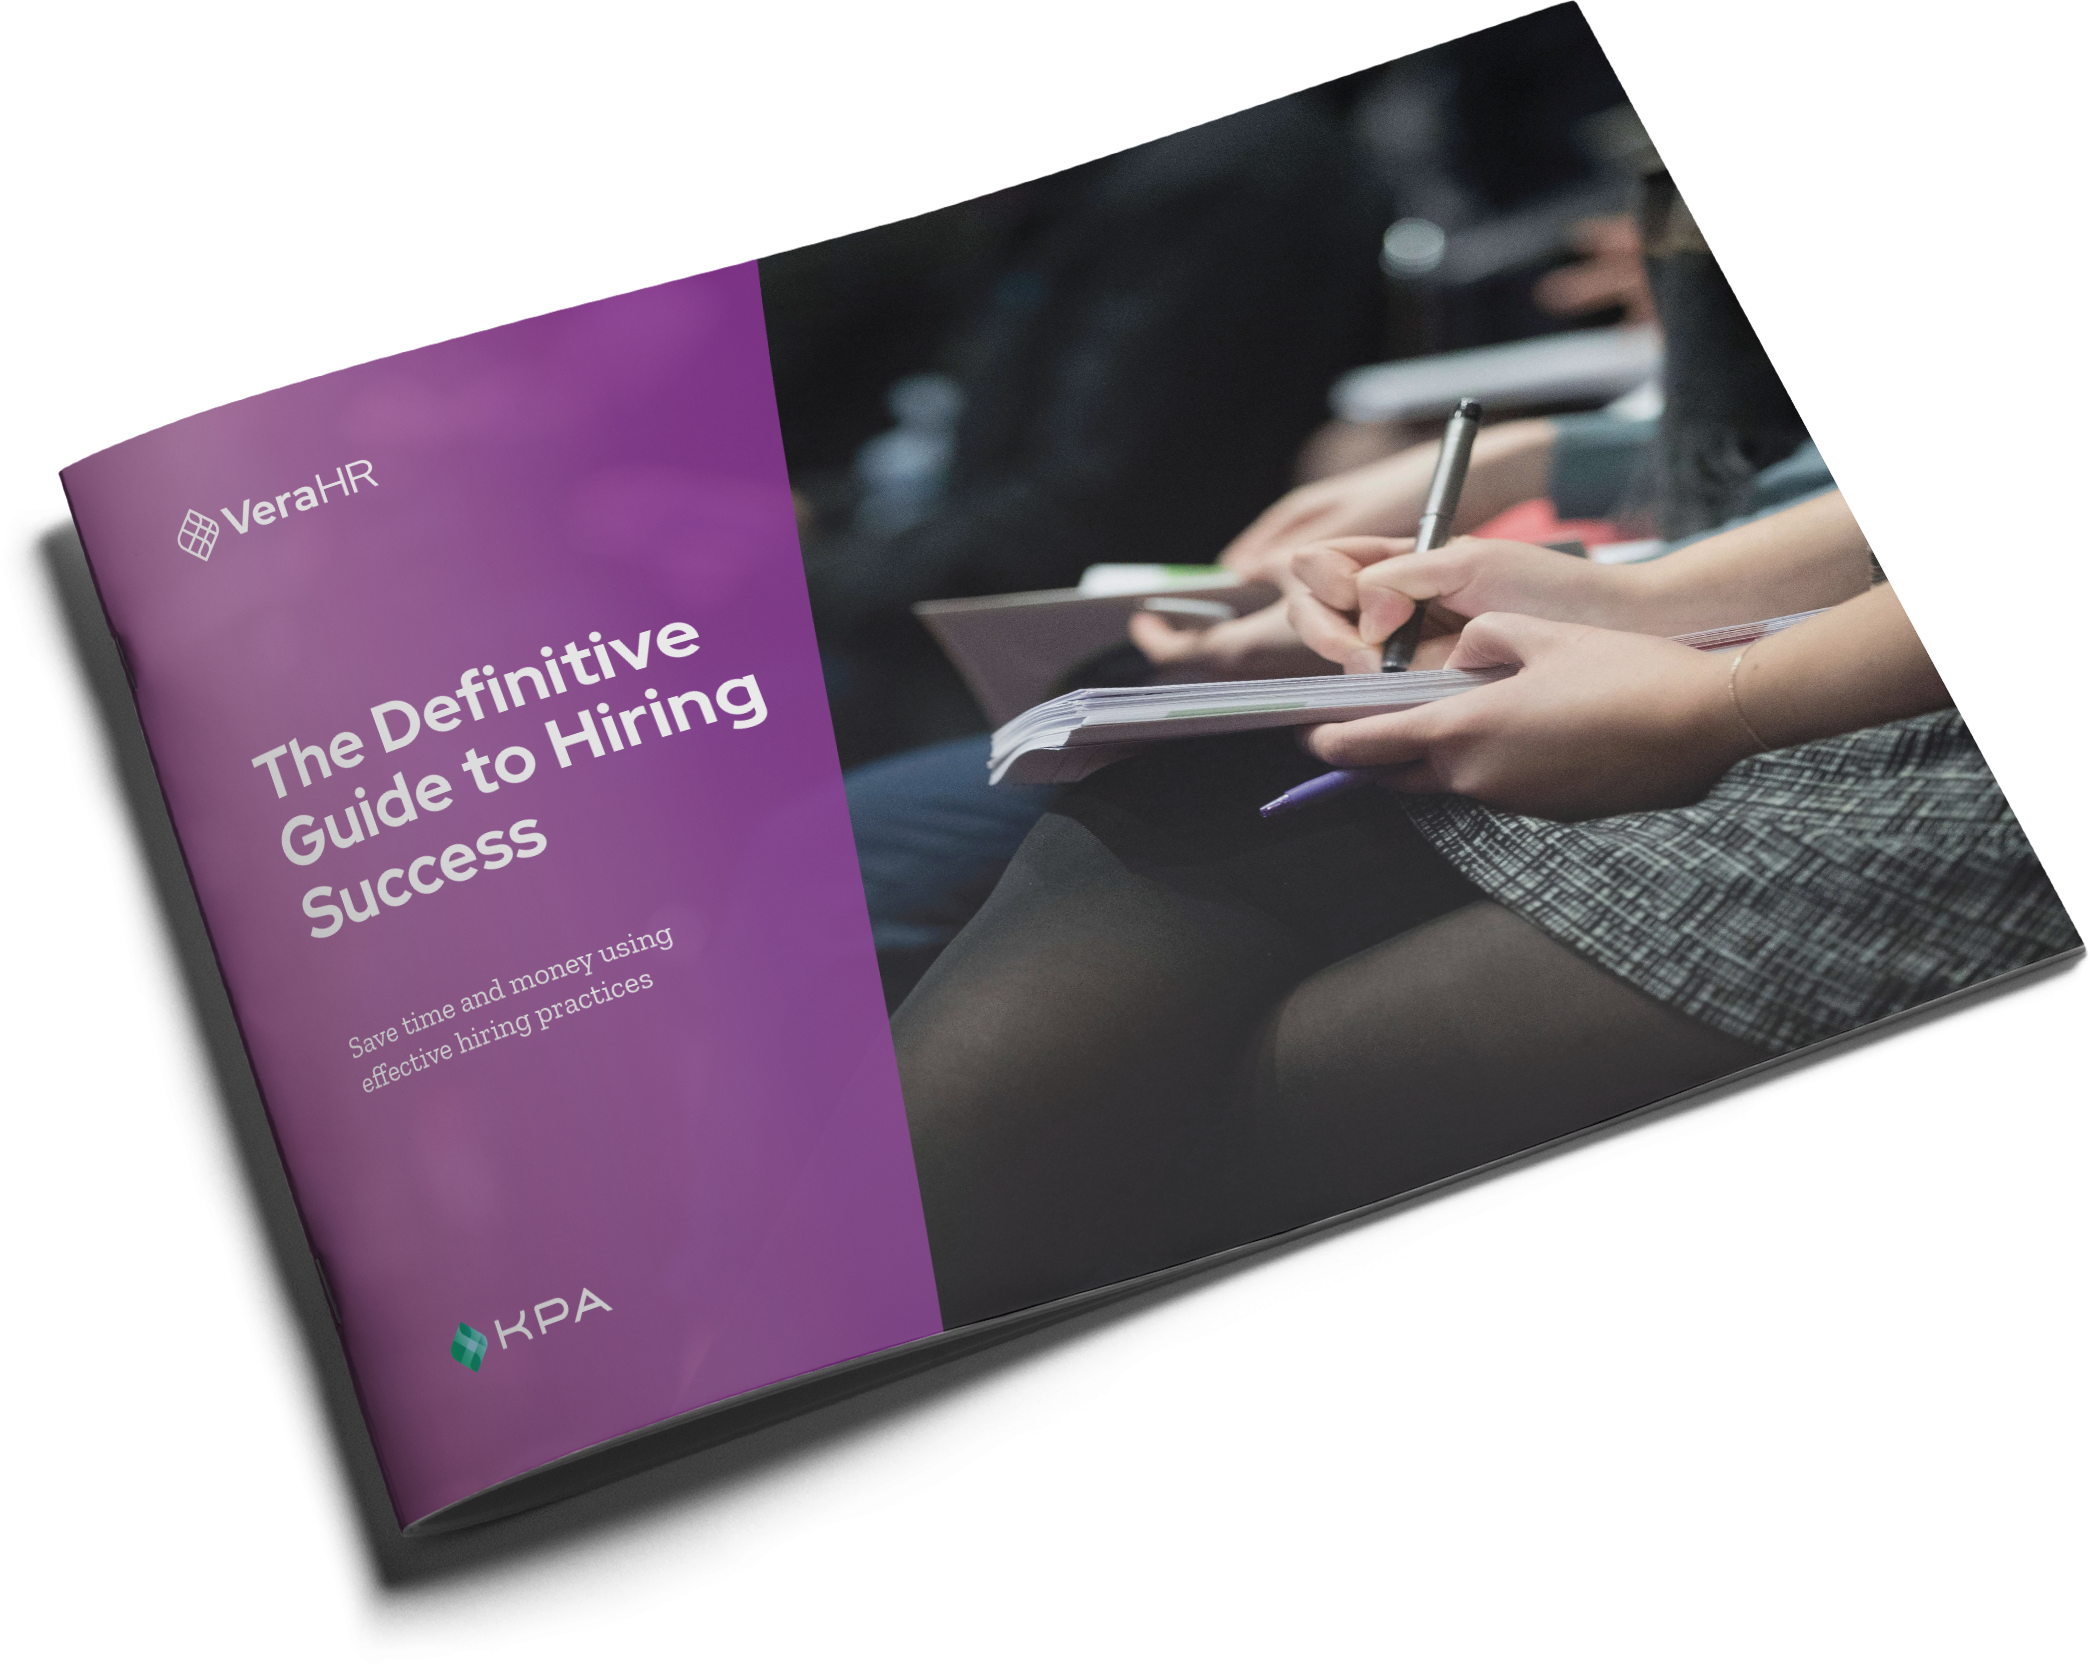 The Definitive Guide to Hiring Success cover